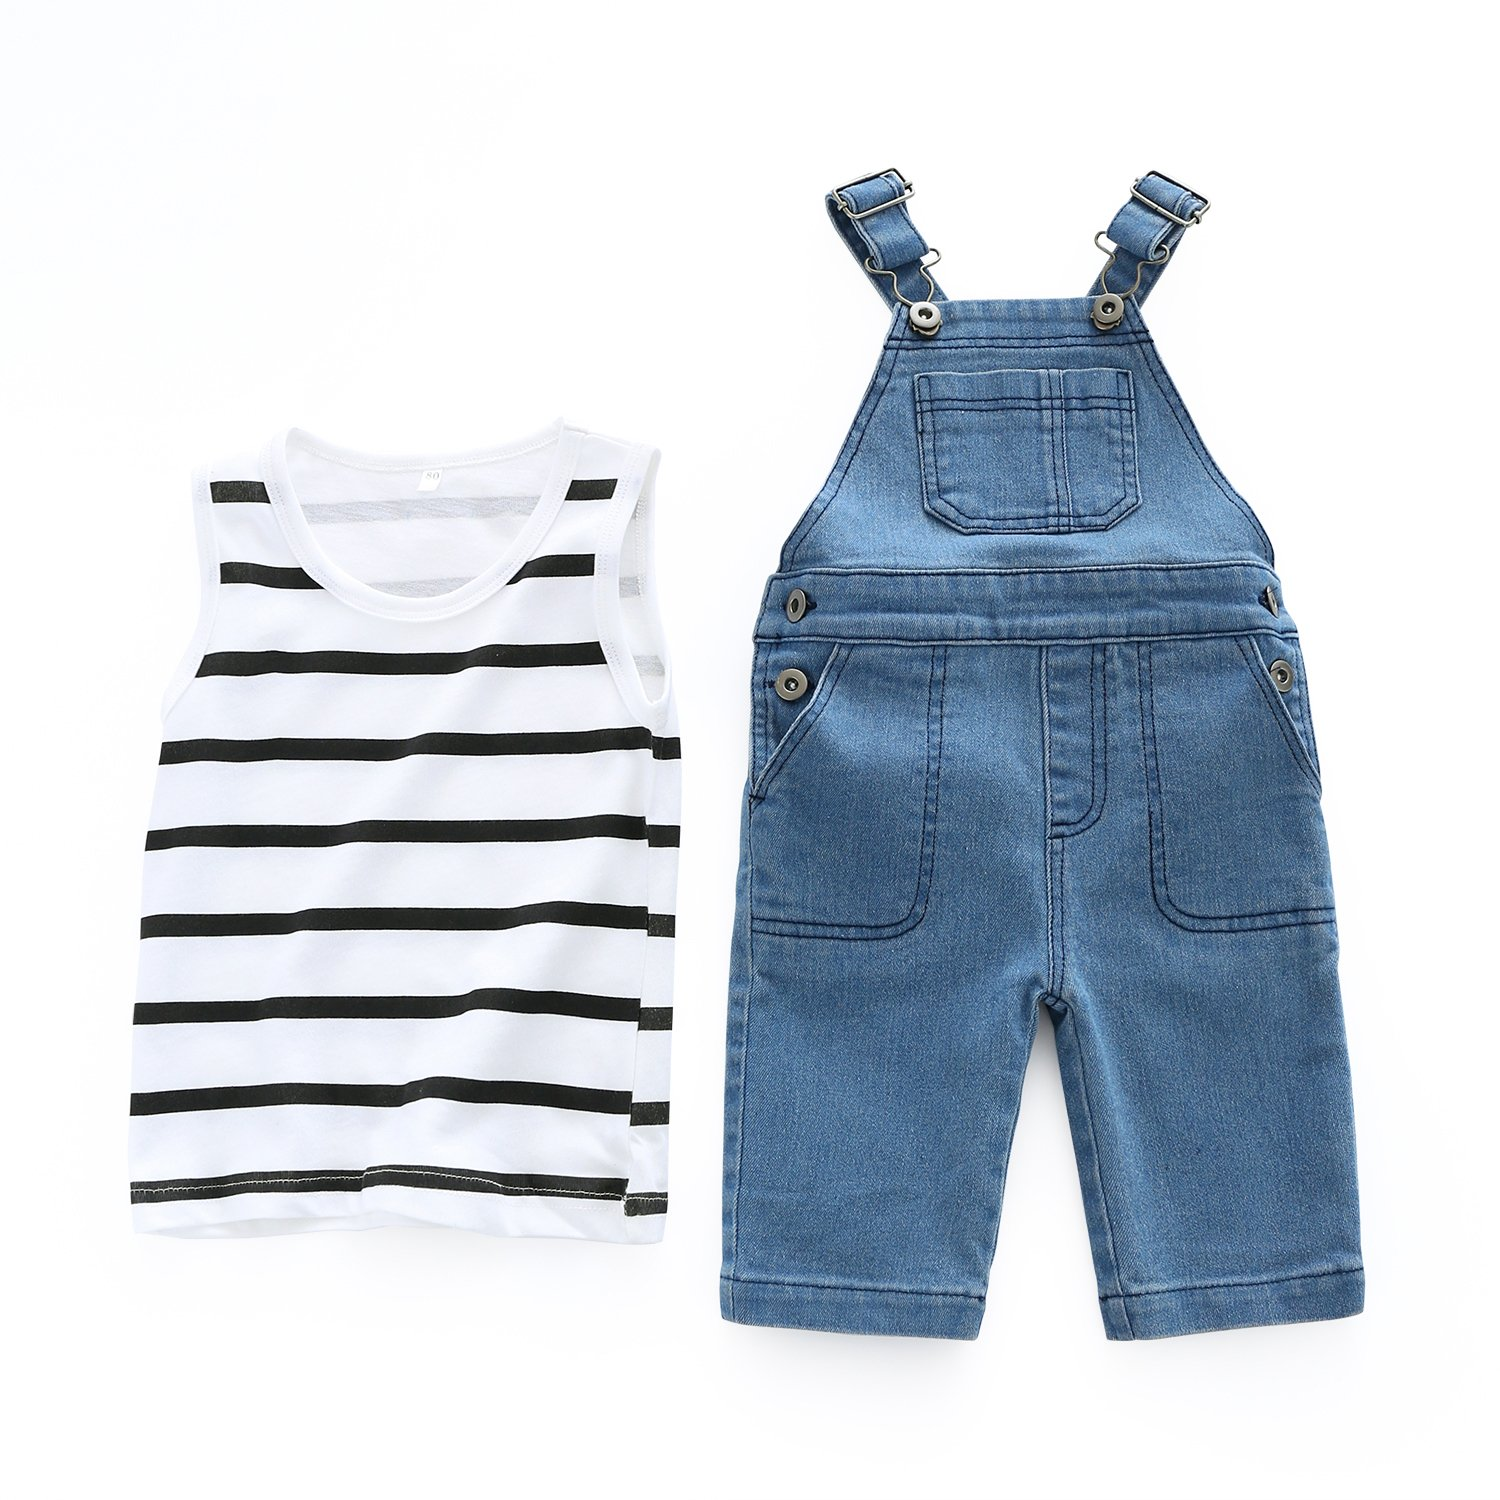 Baby Overalls Set Stripped Sleeveless Shirt Top+ Denim Suspender Pants Outfits